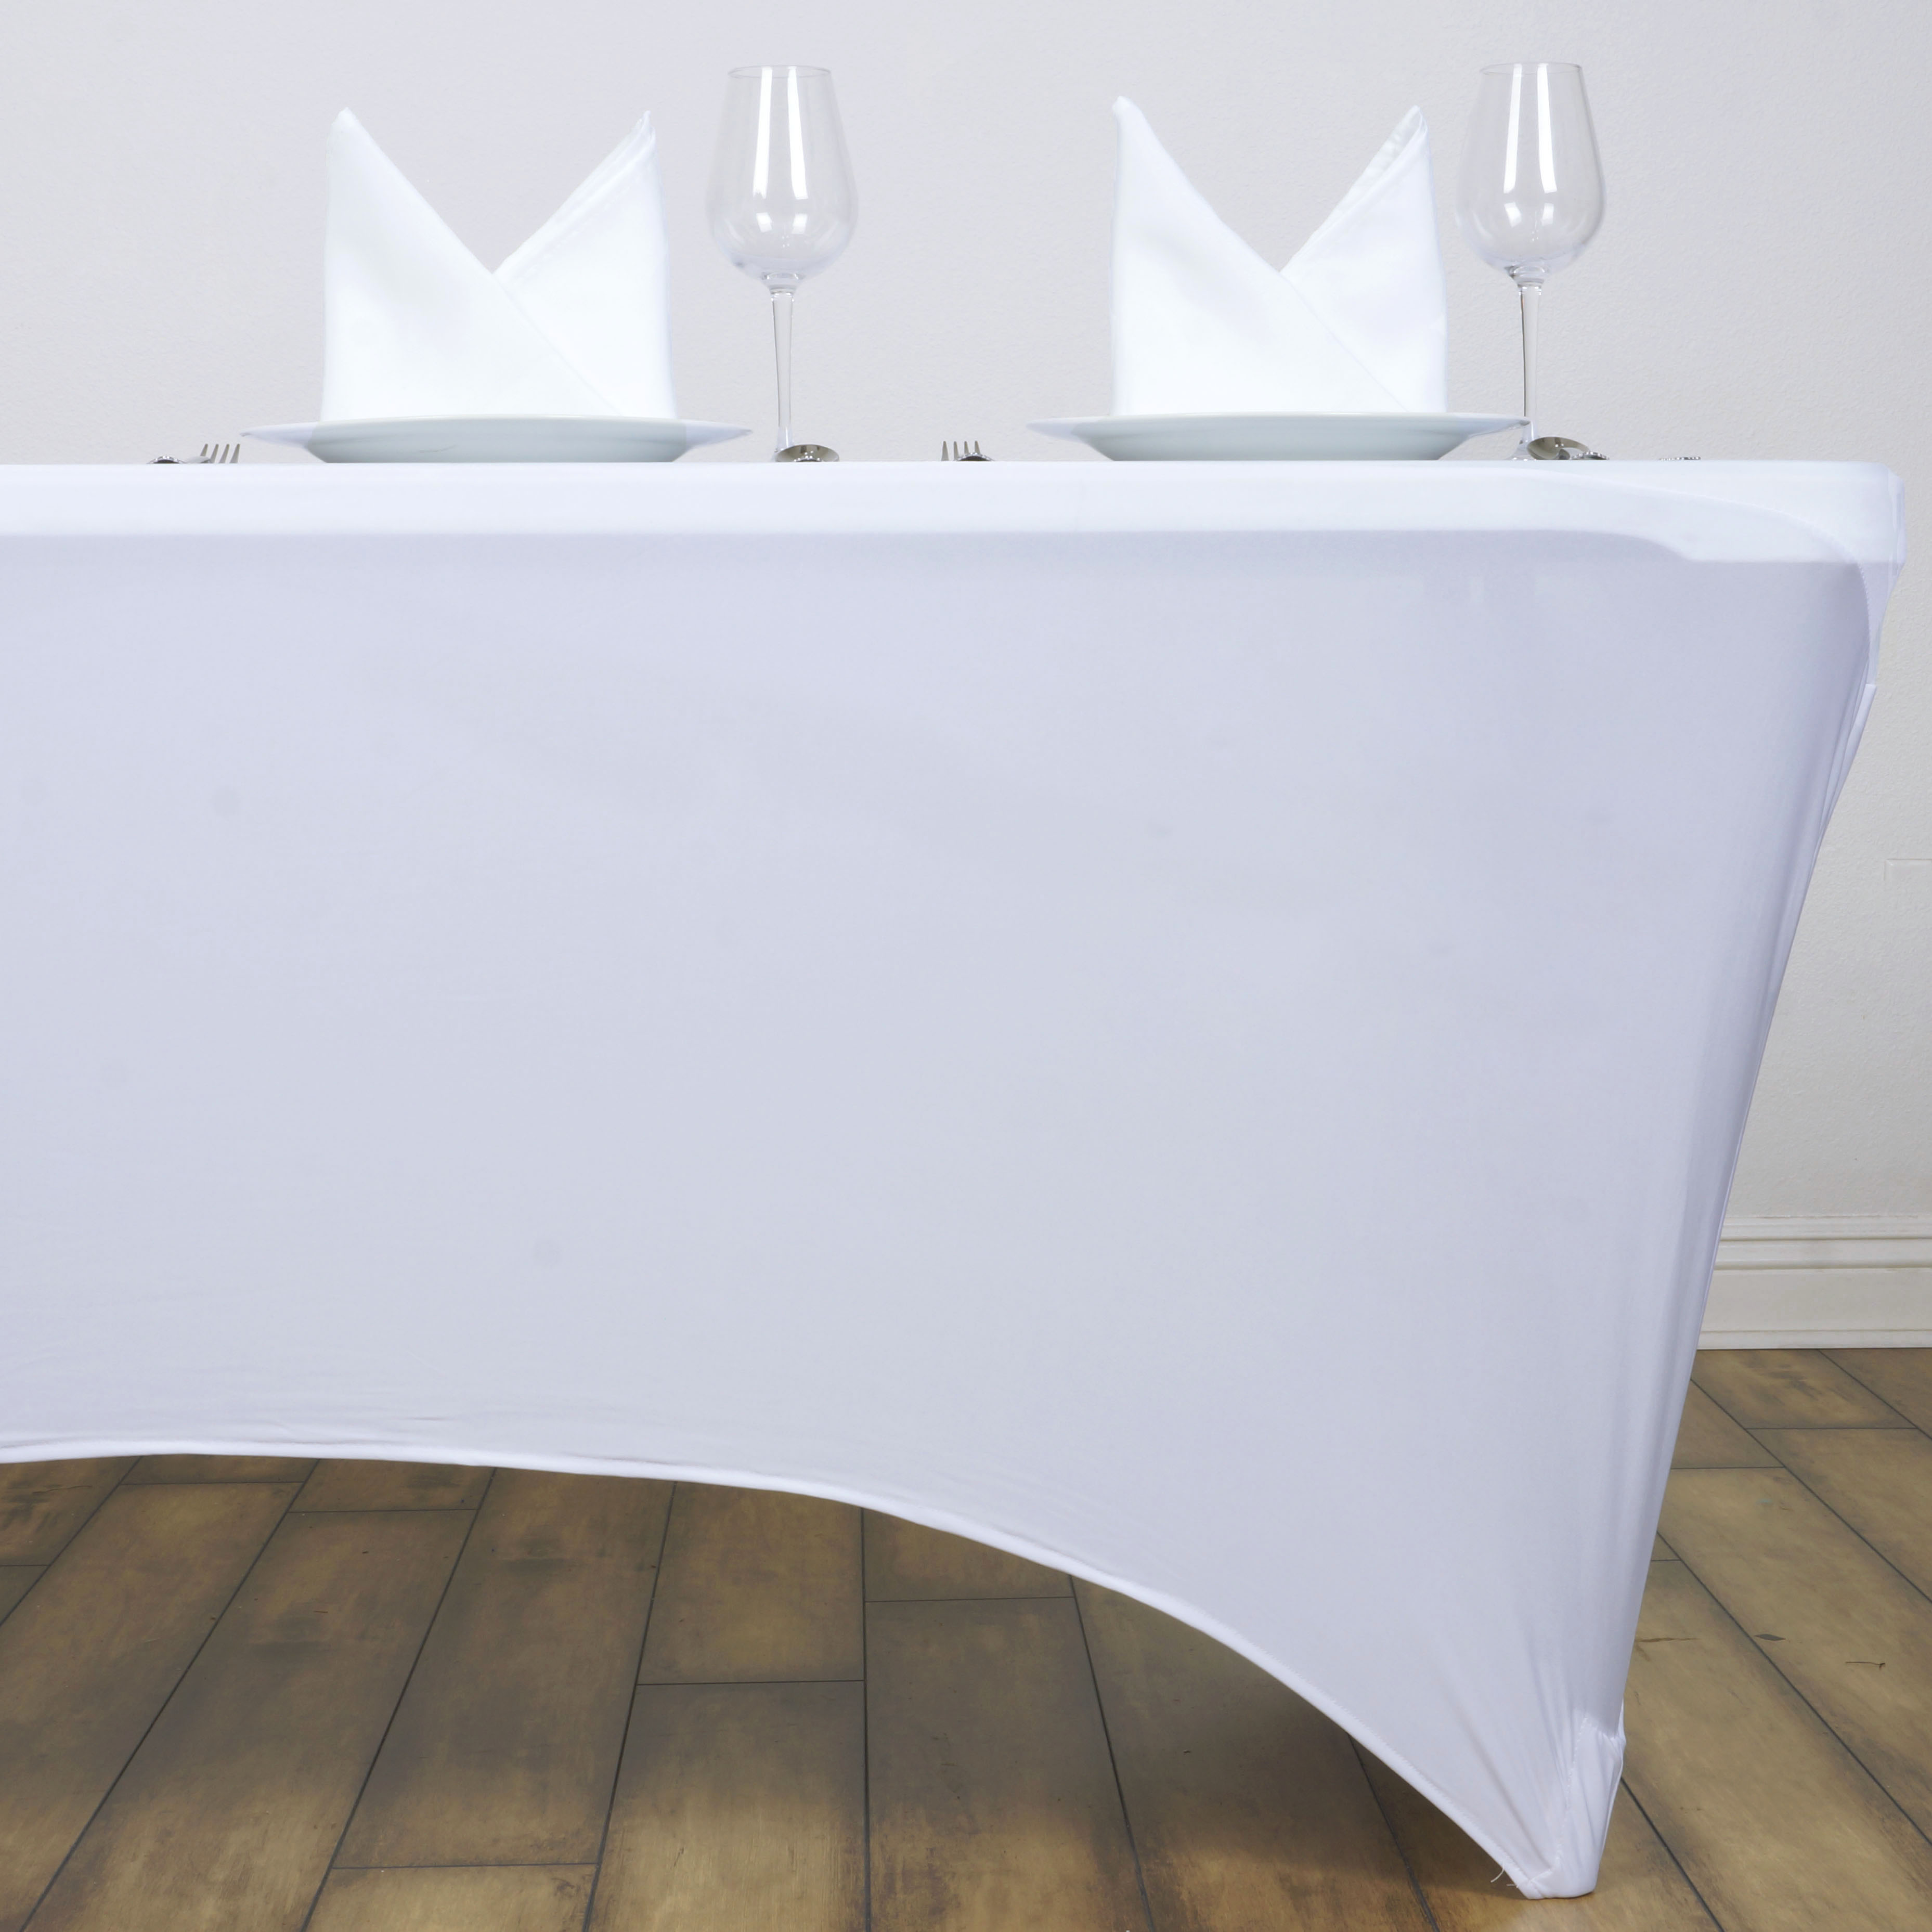 6 pcs 6 ft RECTANGLE SPANDEX STRETCH TABLE COVERS Fitted